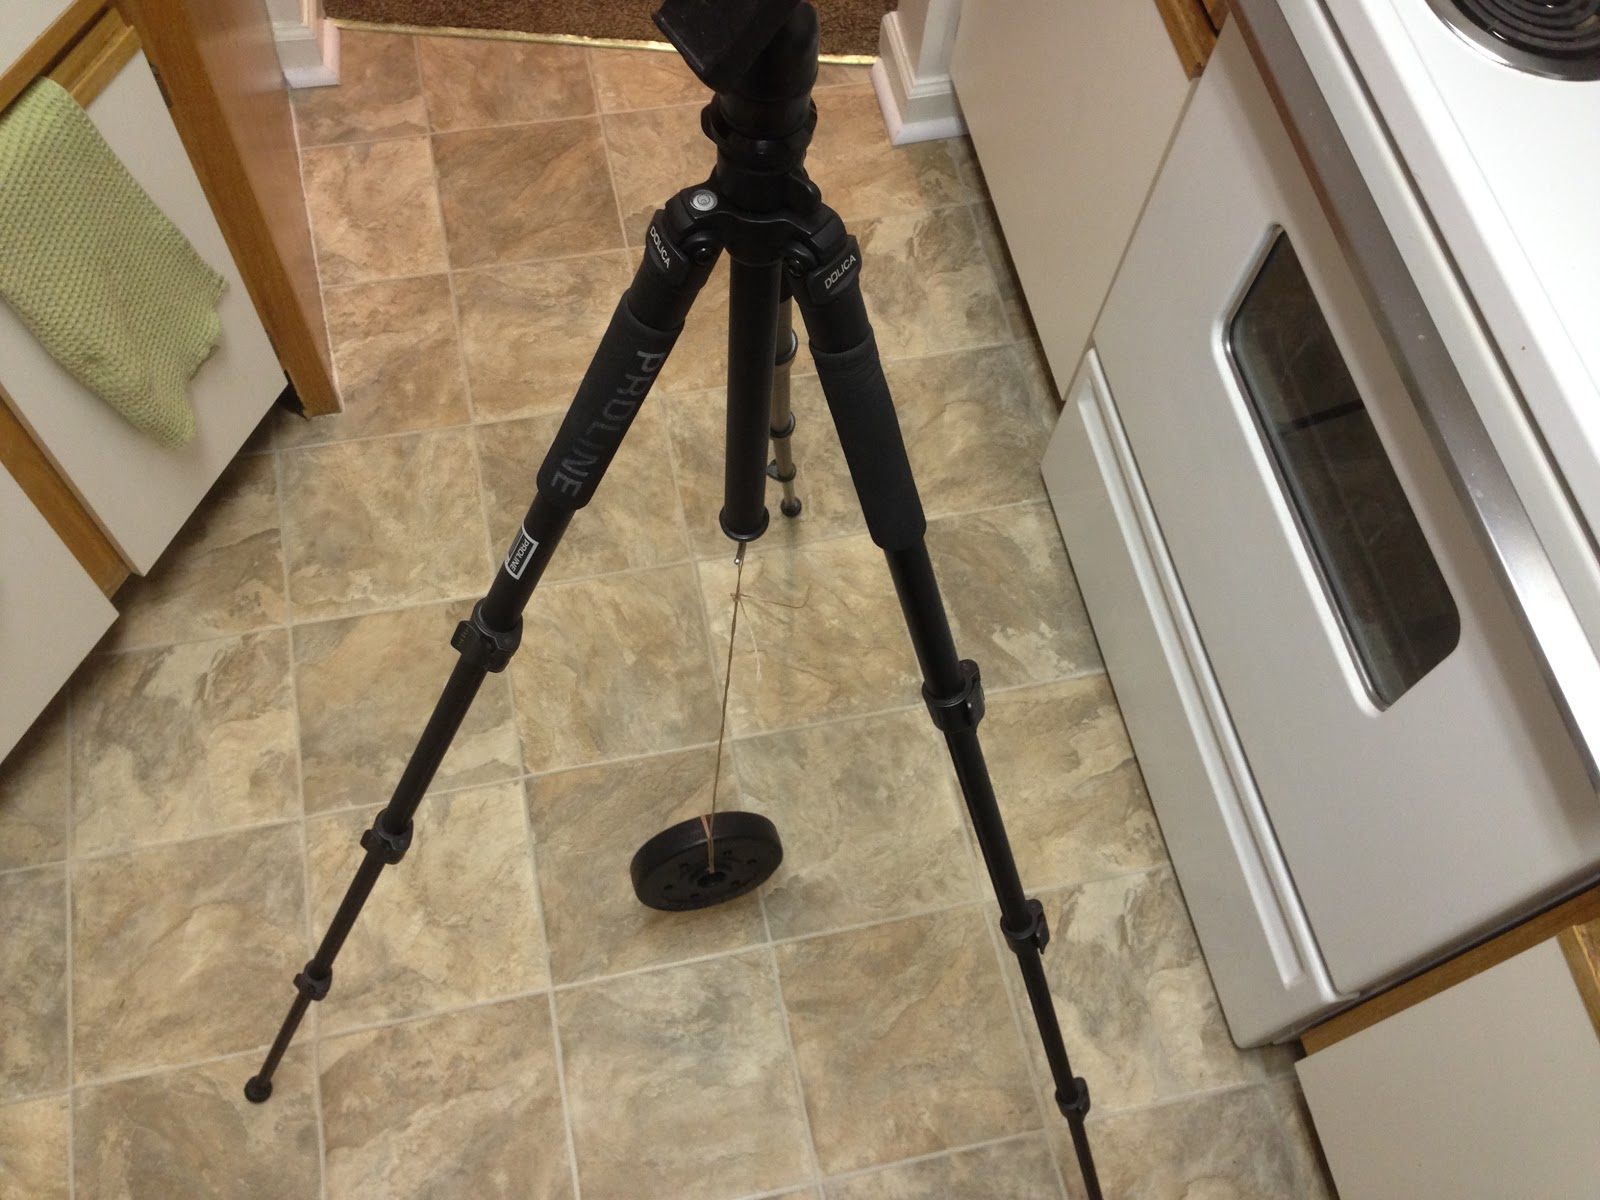 add weight to tripod